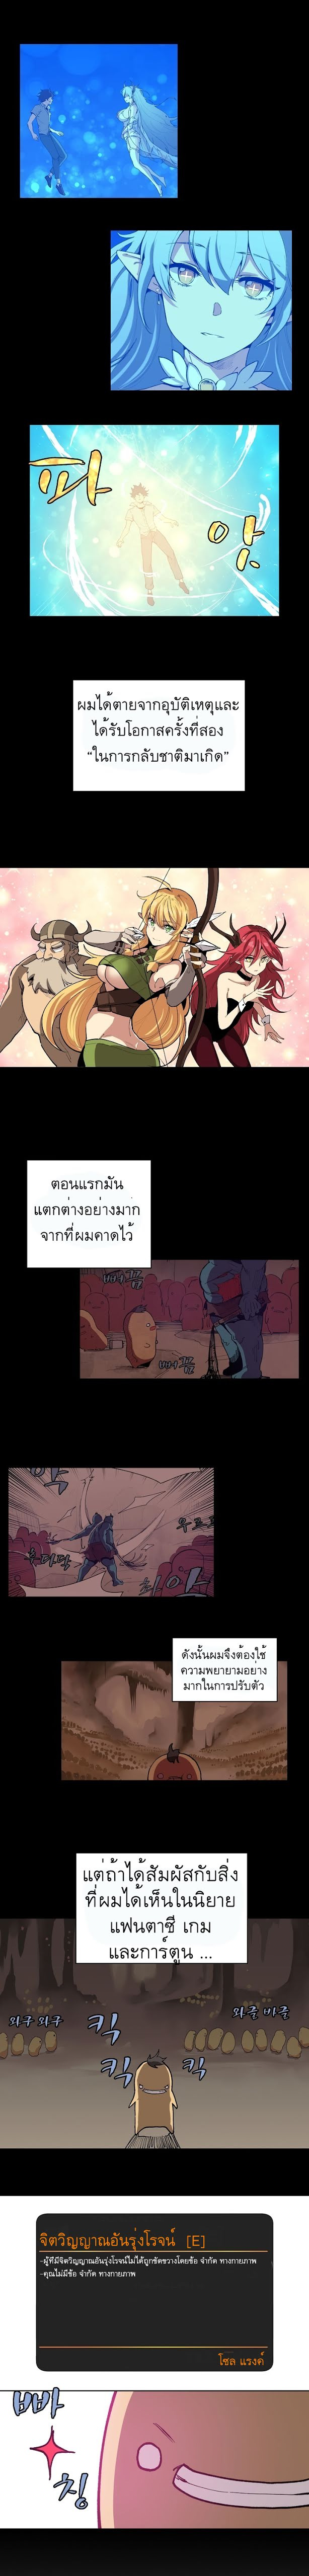 The dungeon master-ตอนที่ 2